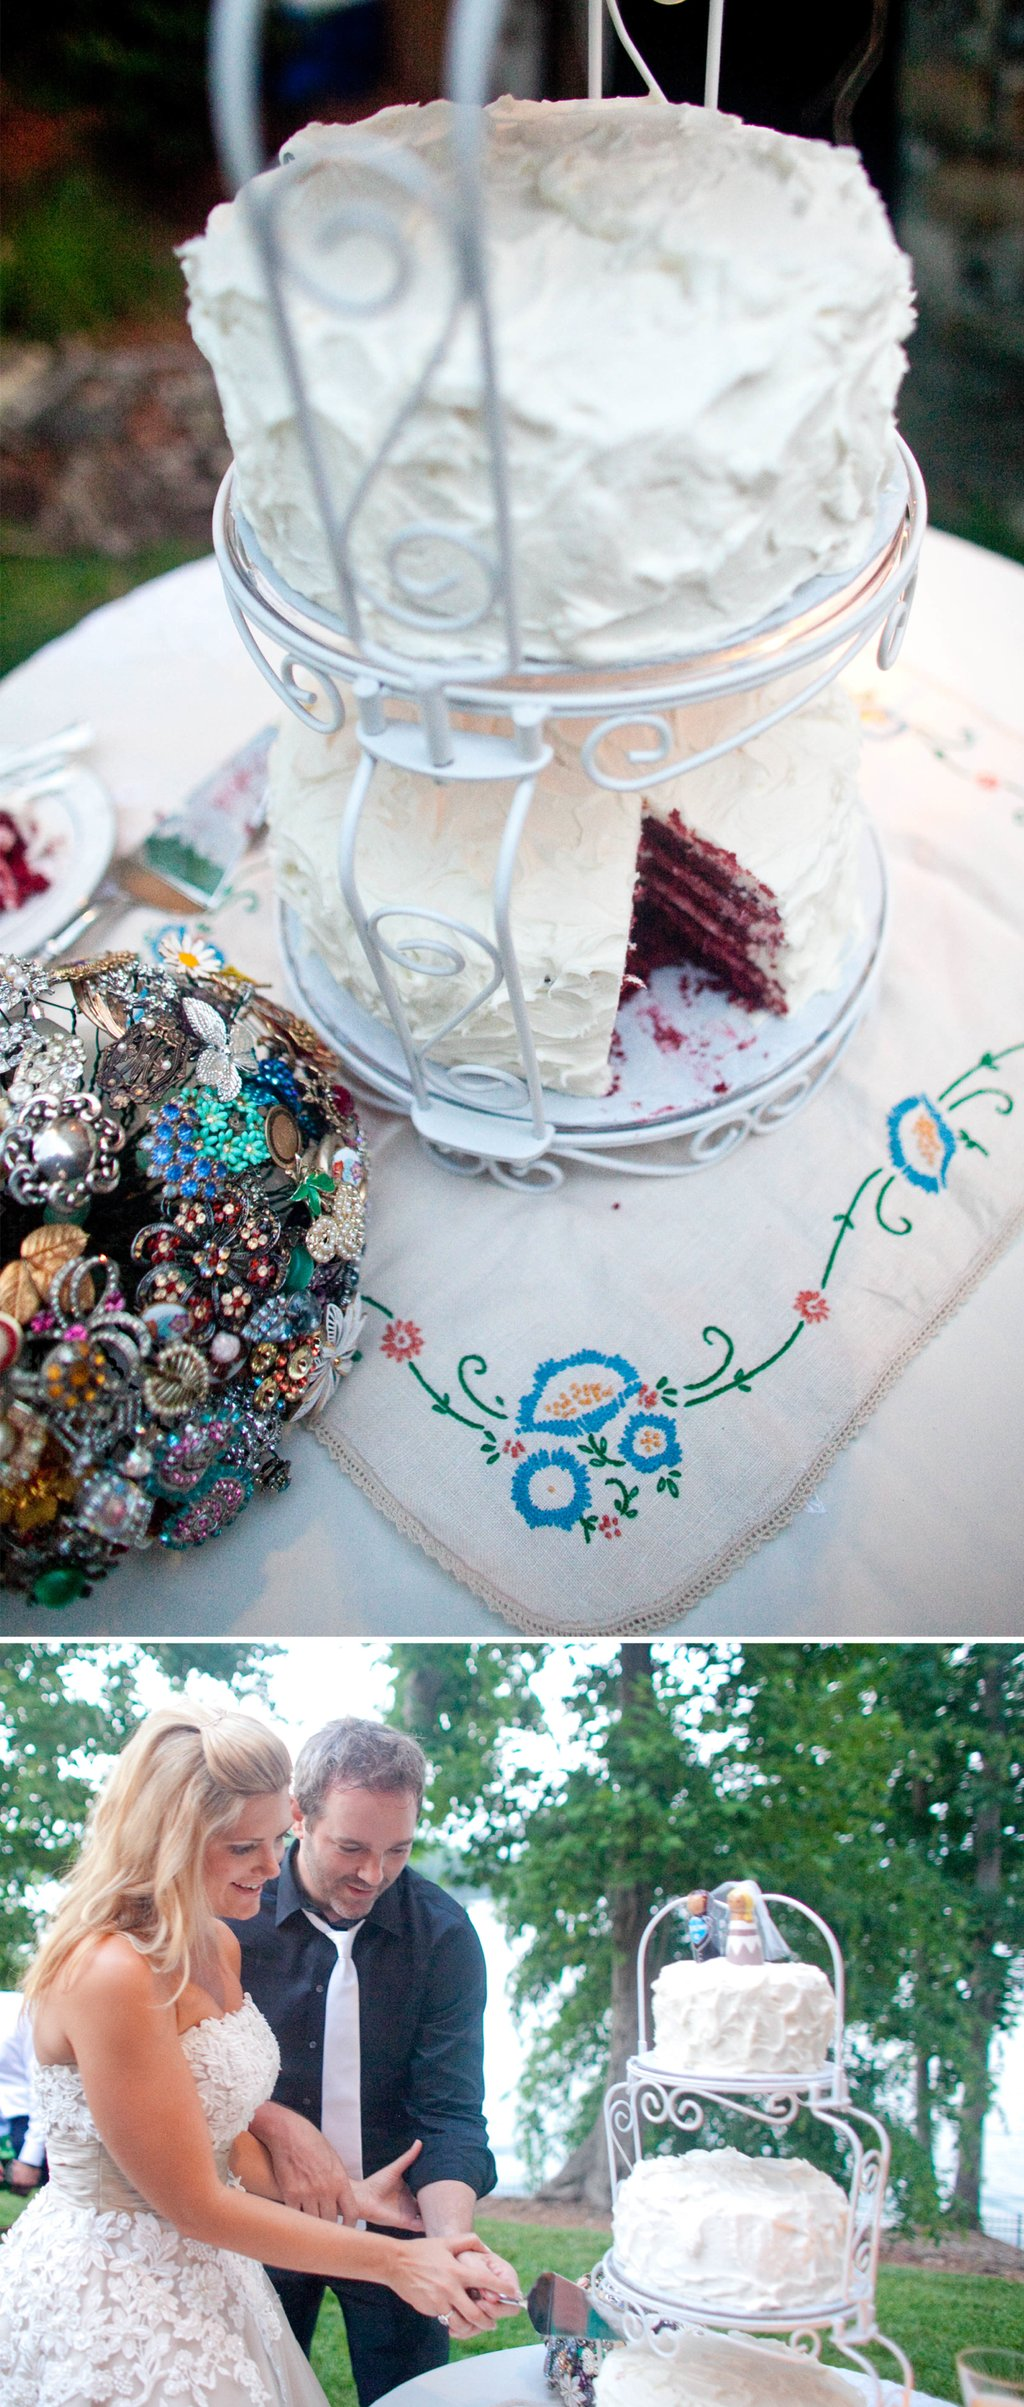 White-wedding-cake-outdoor-wedding.full